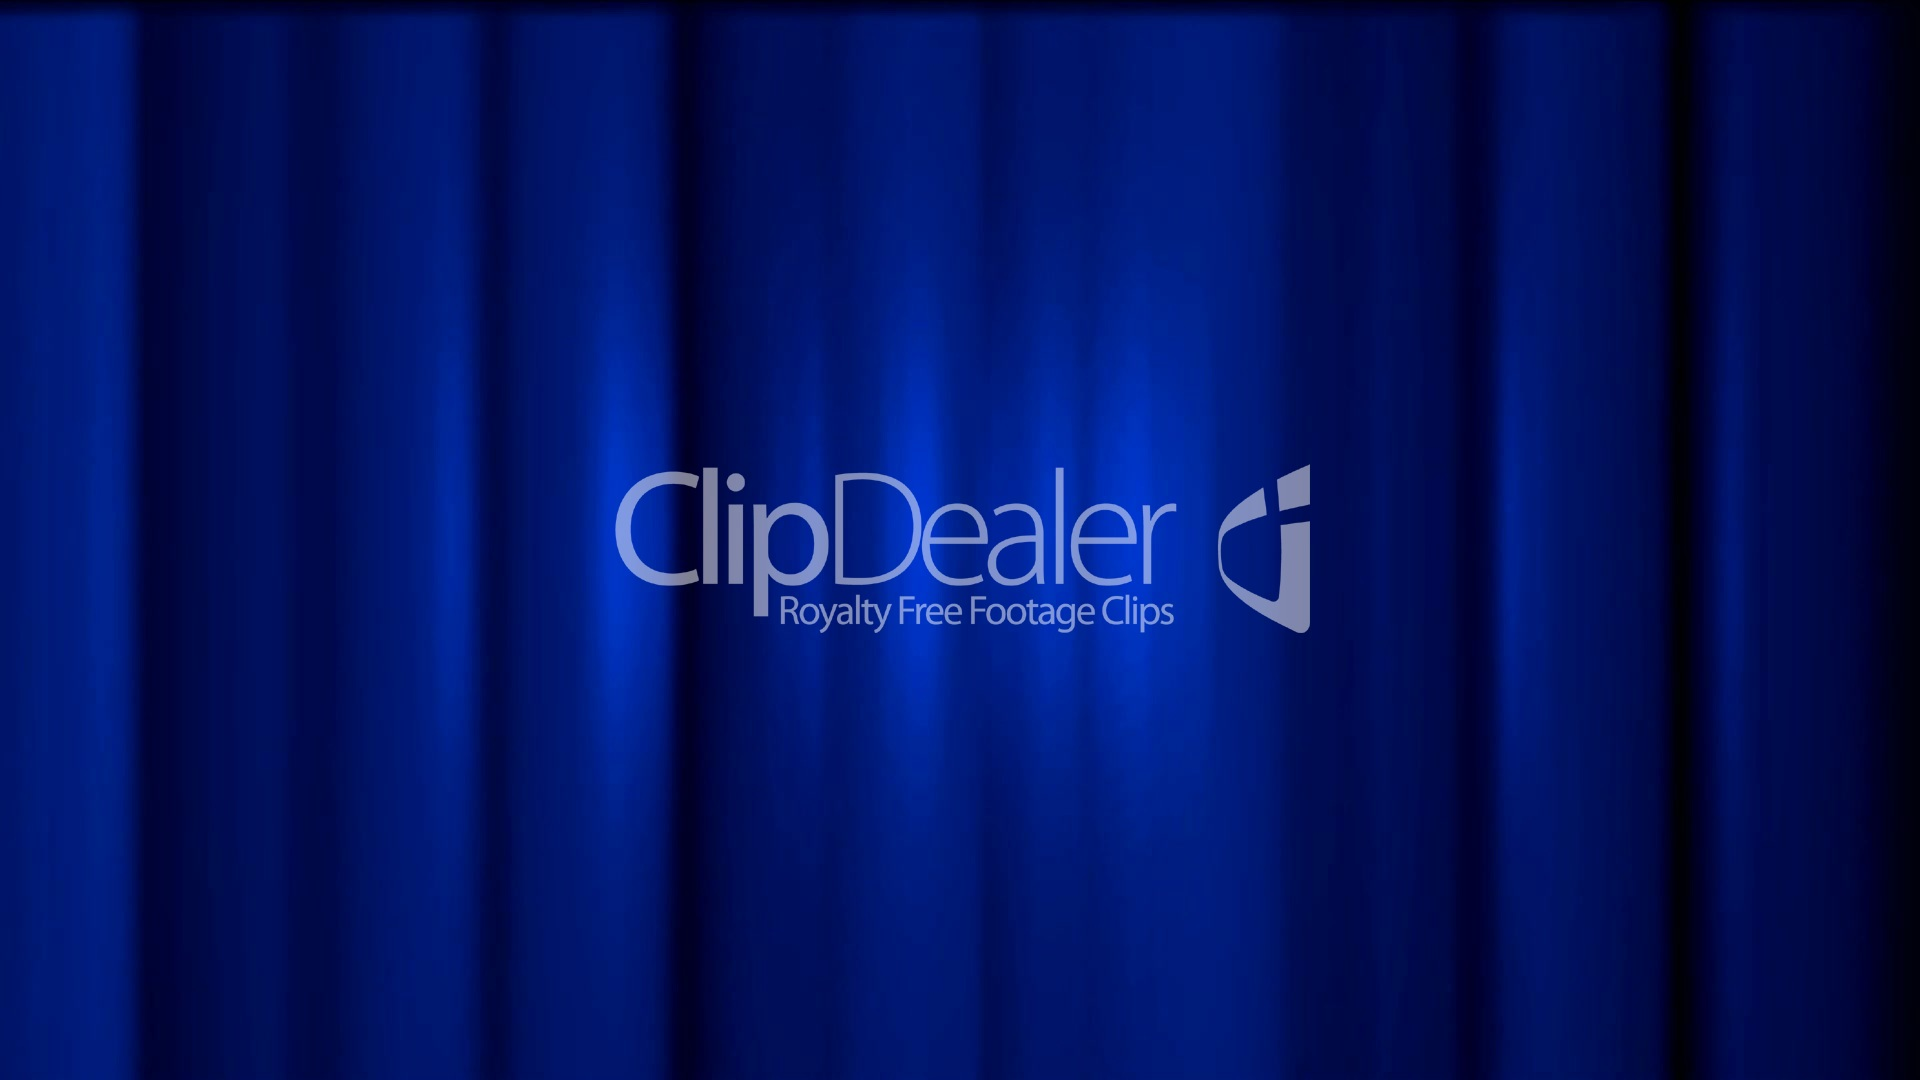 Bl blue stage curtains background - Bl Blue Stage Curtains Background 29